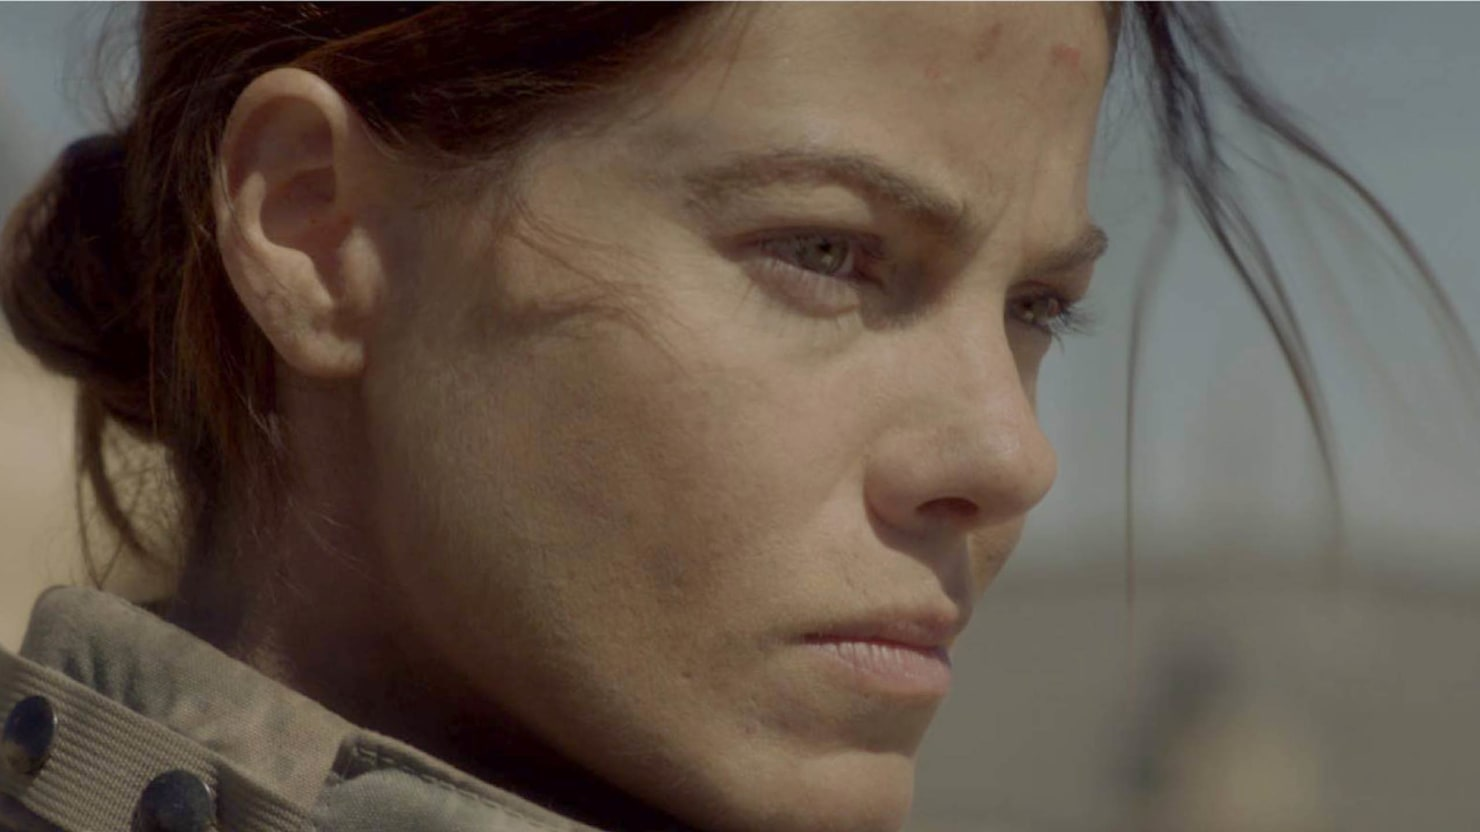 Michelle Monaghan on 'Fort Bliss,' the Lack of Roles for Women, and 'True Detective' Hysteria